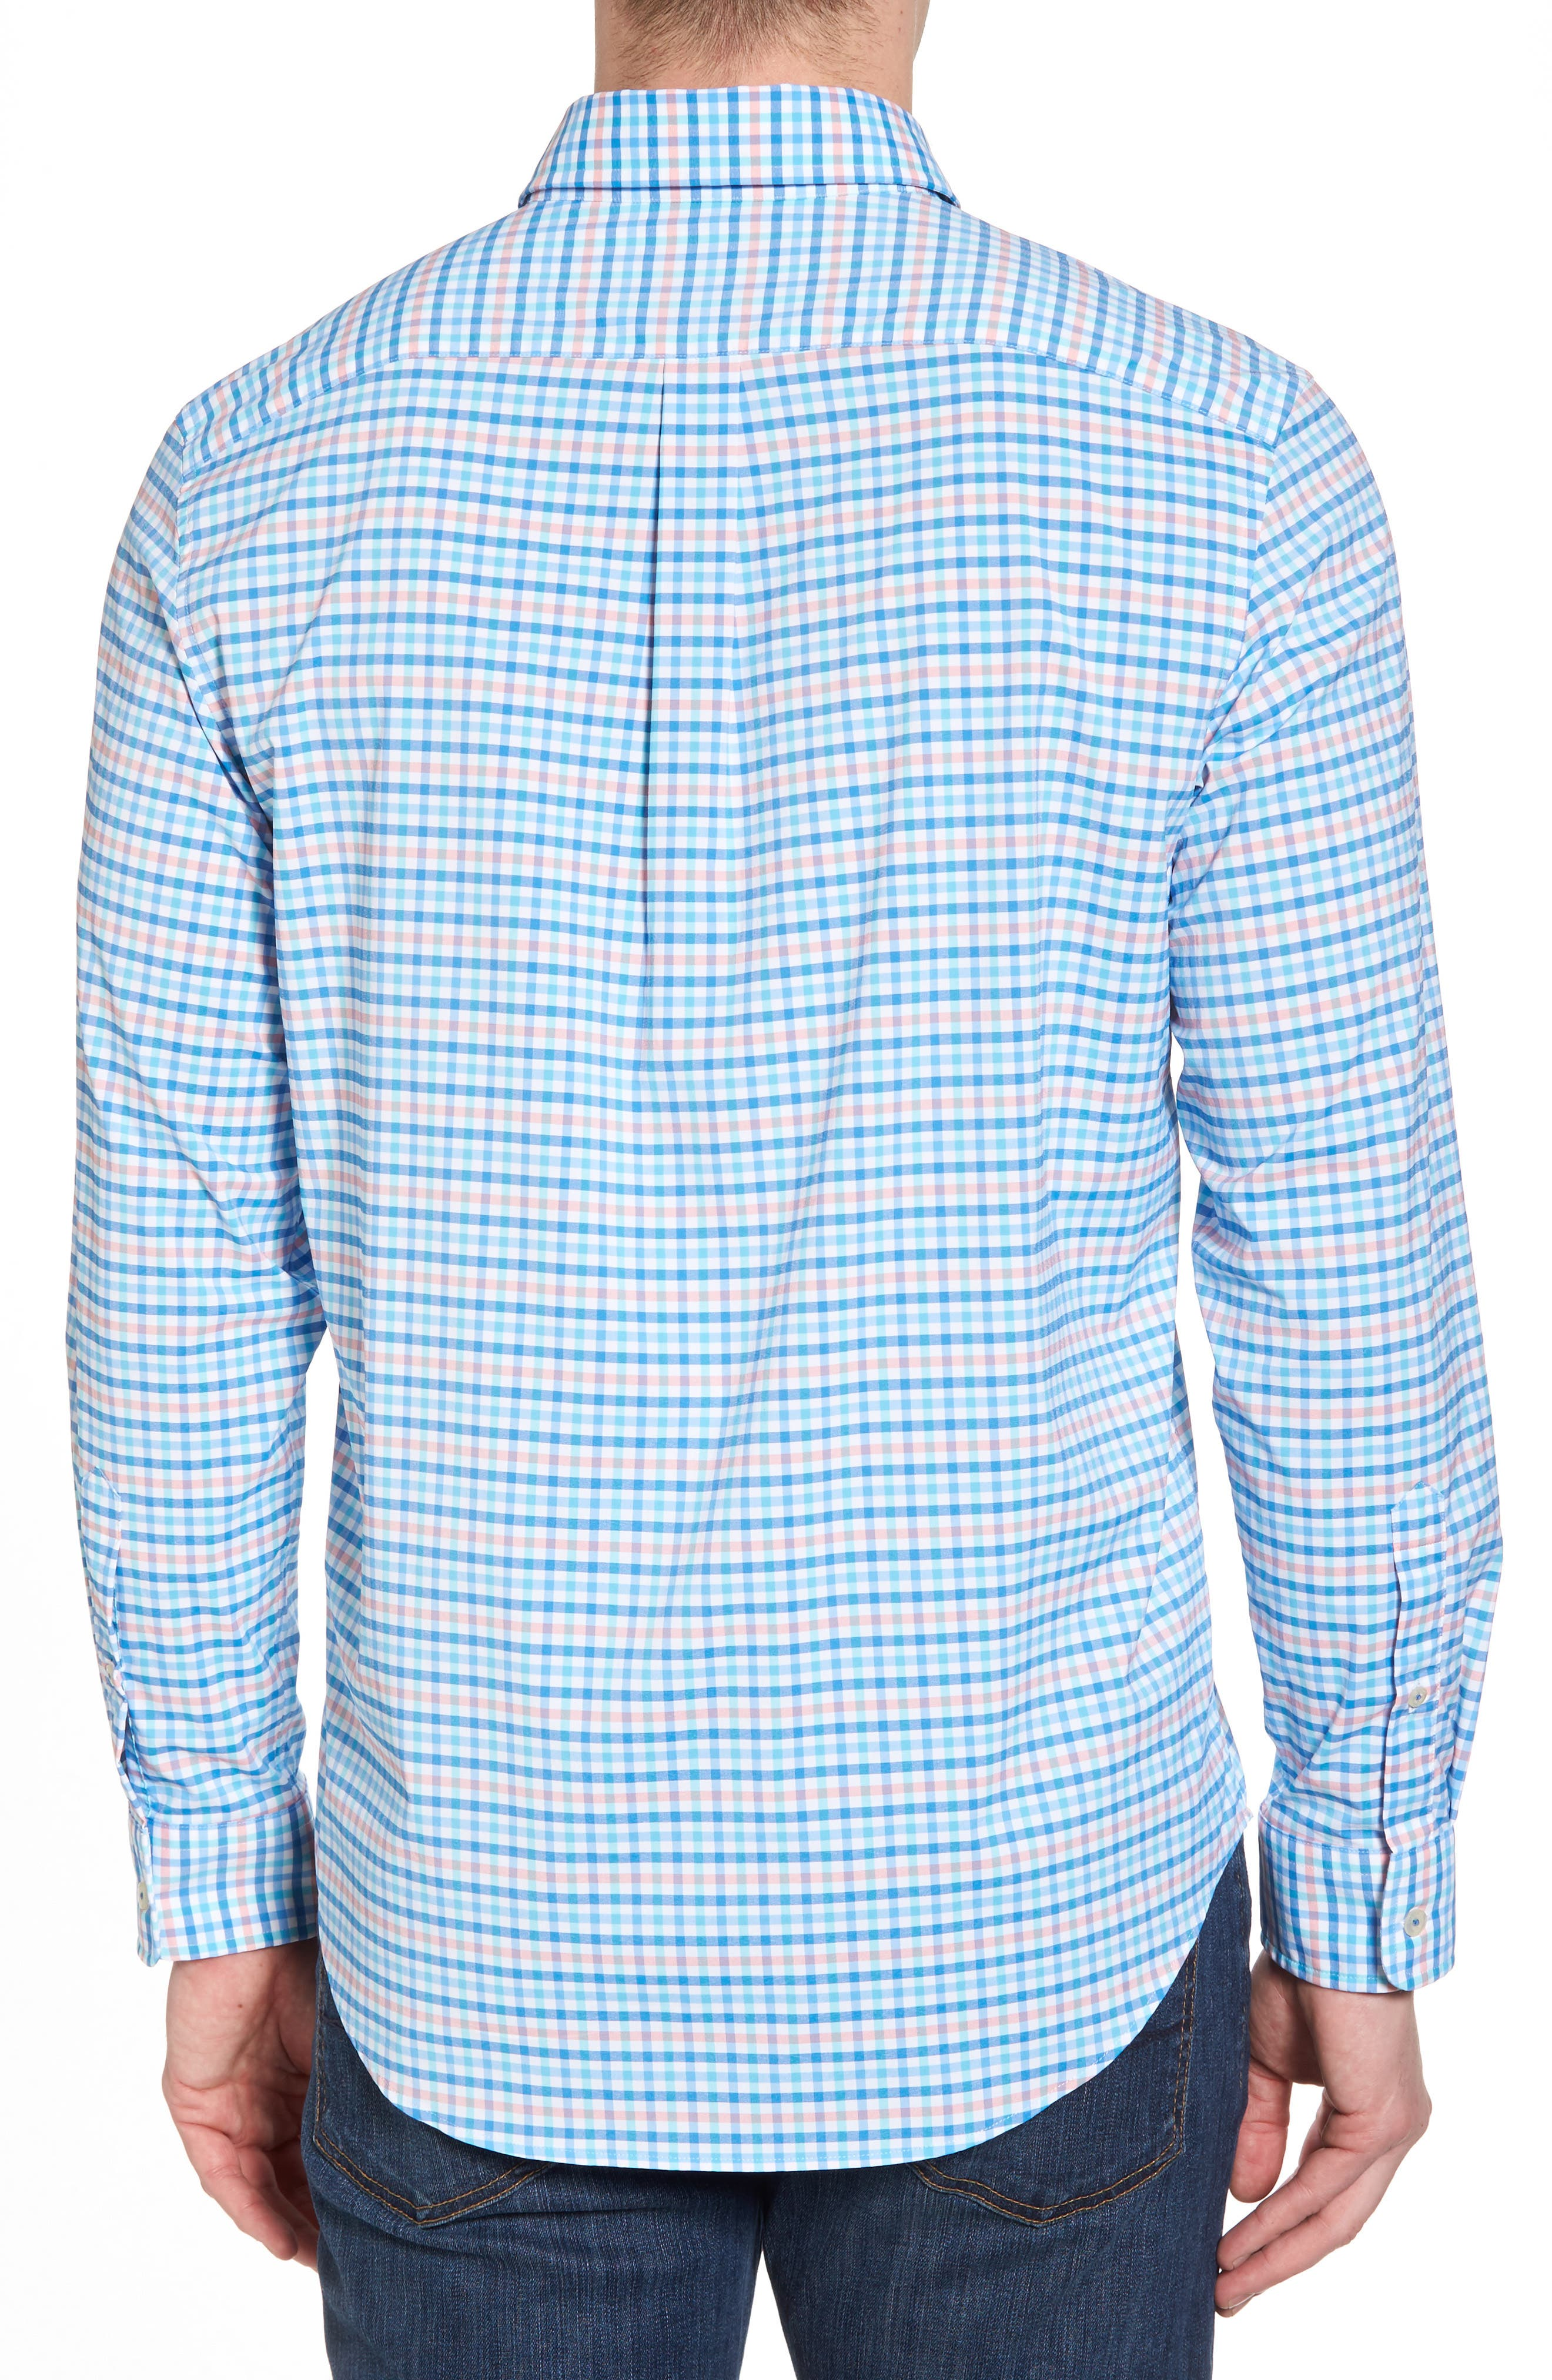 Coco Bay Classic Fit Check Performance Sport Shirt,                             Alternate thumbnail 2, color,                             Ocean Breeze